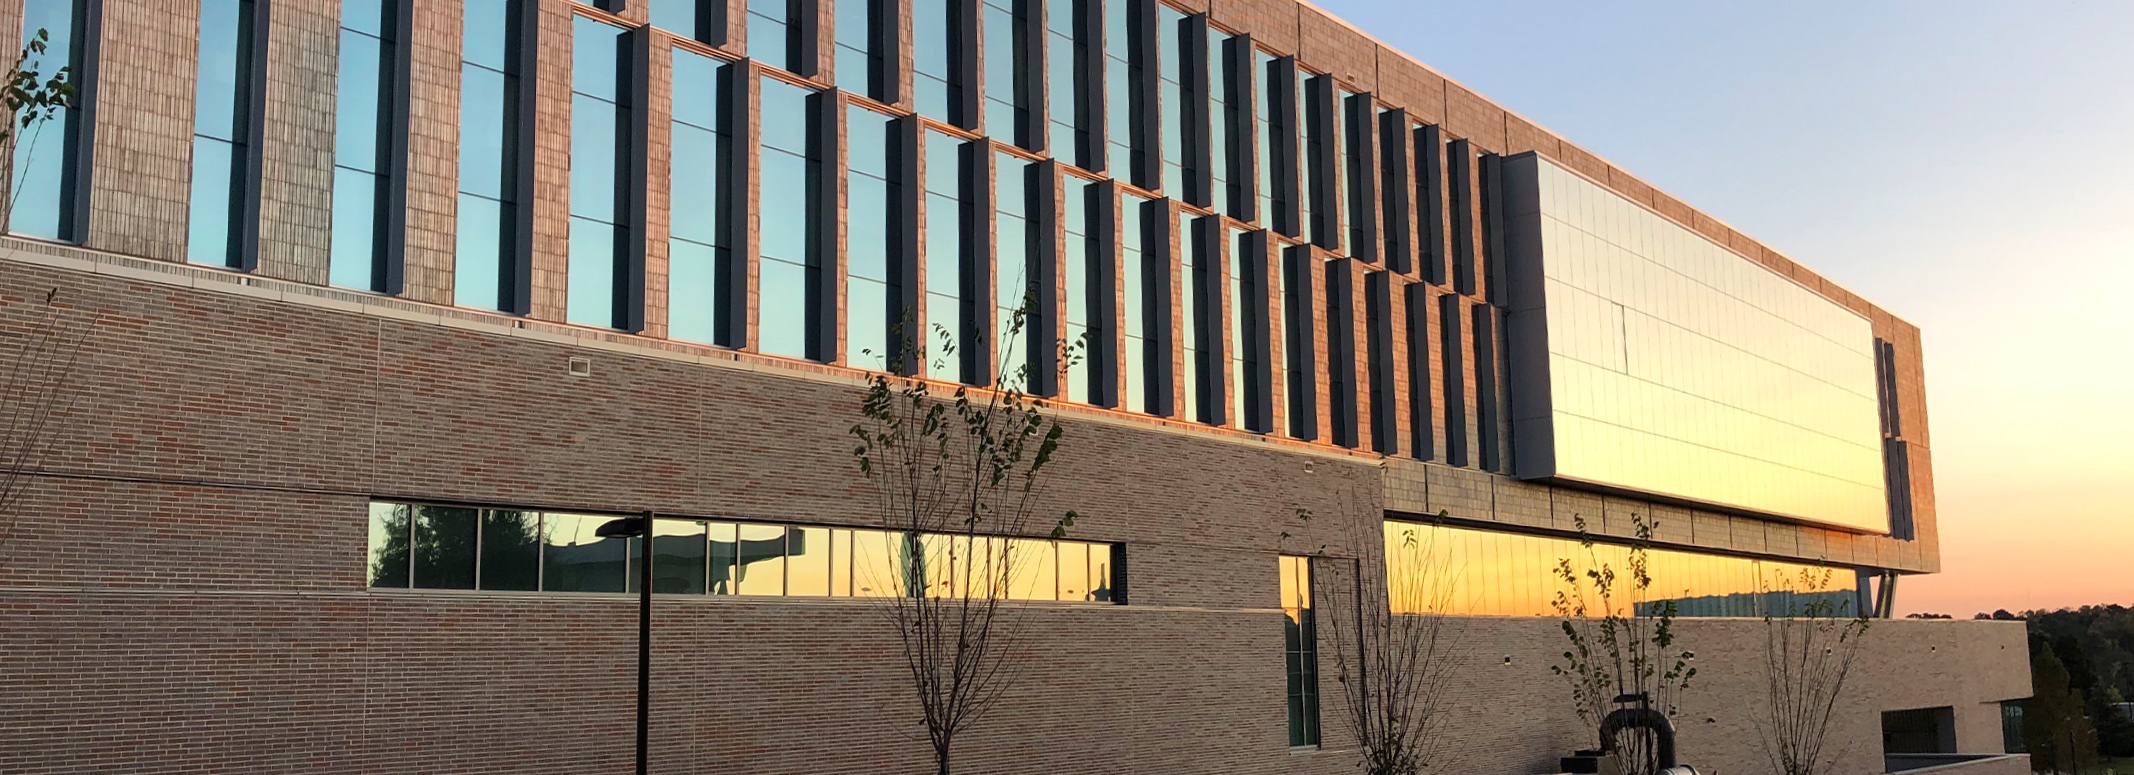 35 North Provides Cost Estimating Services for NC State University's Fitts-Woolard Hall Engineering Building